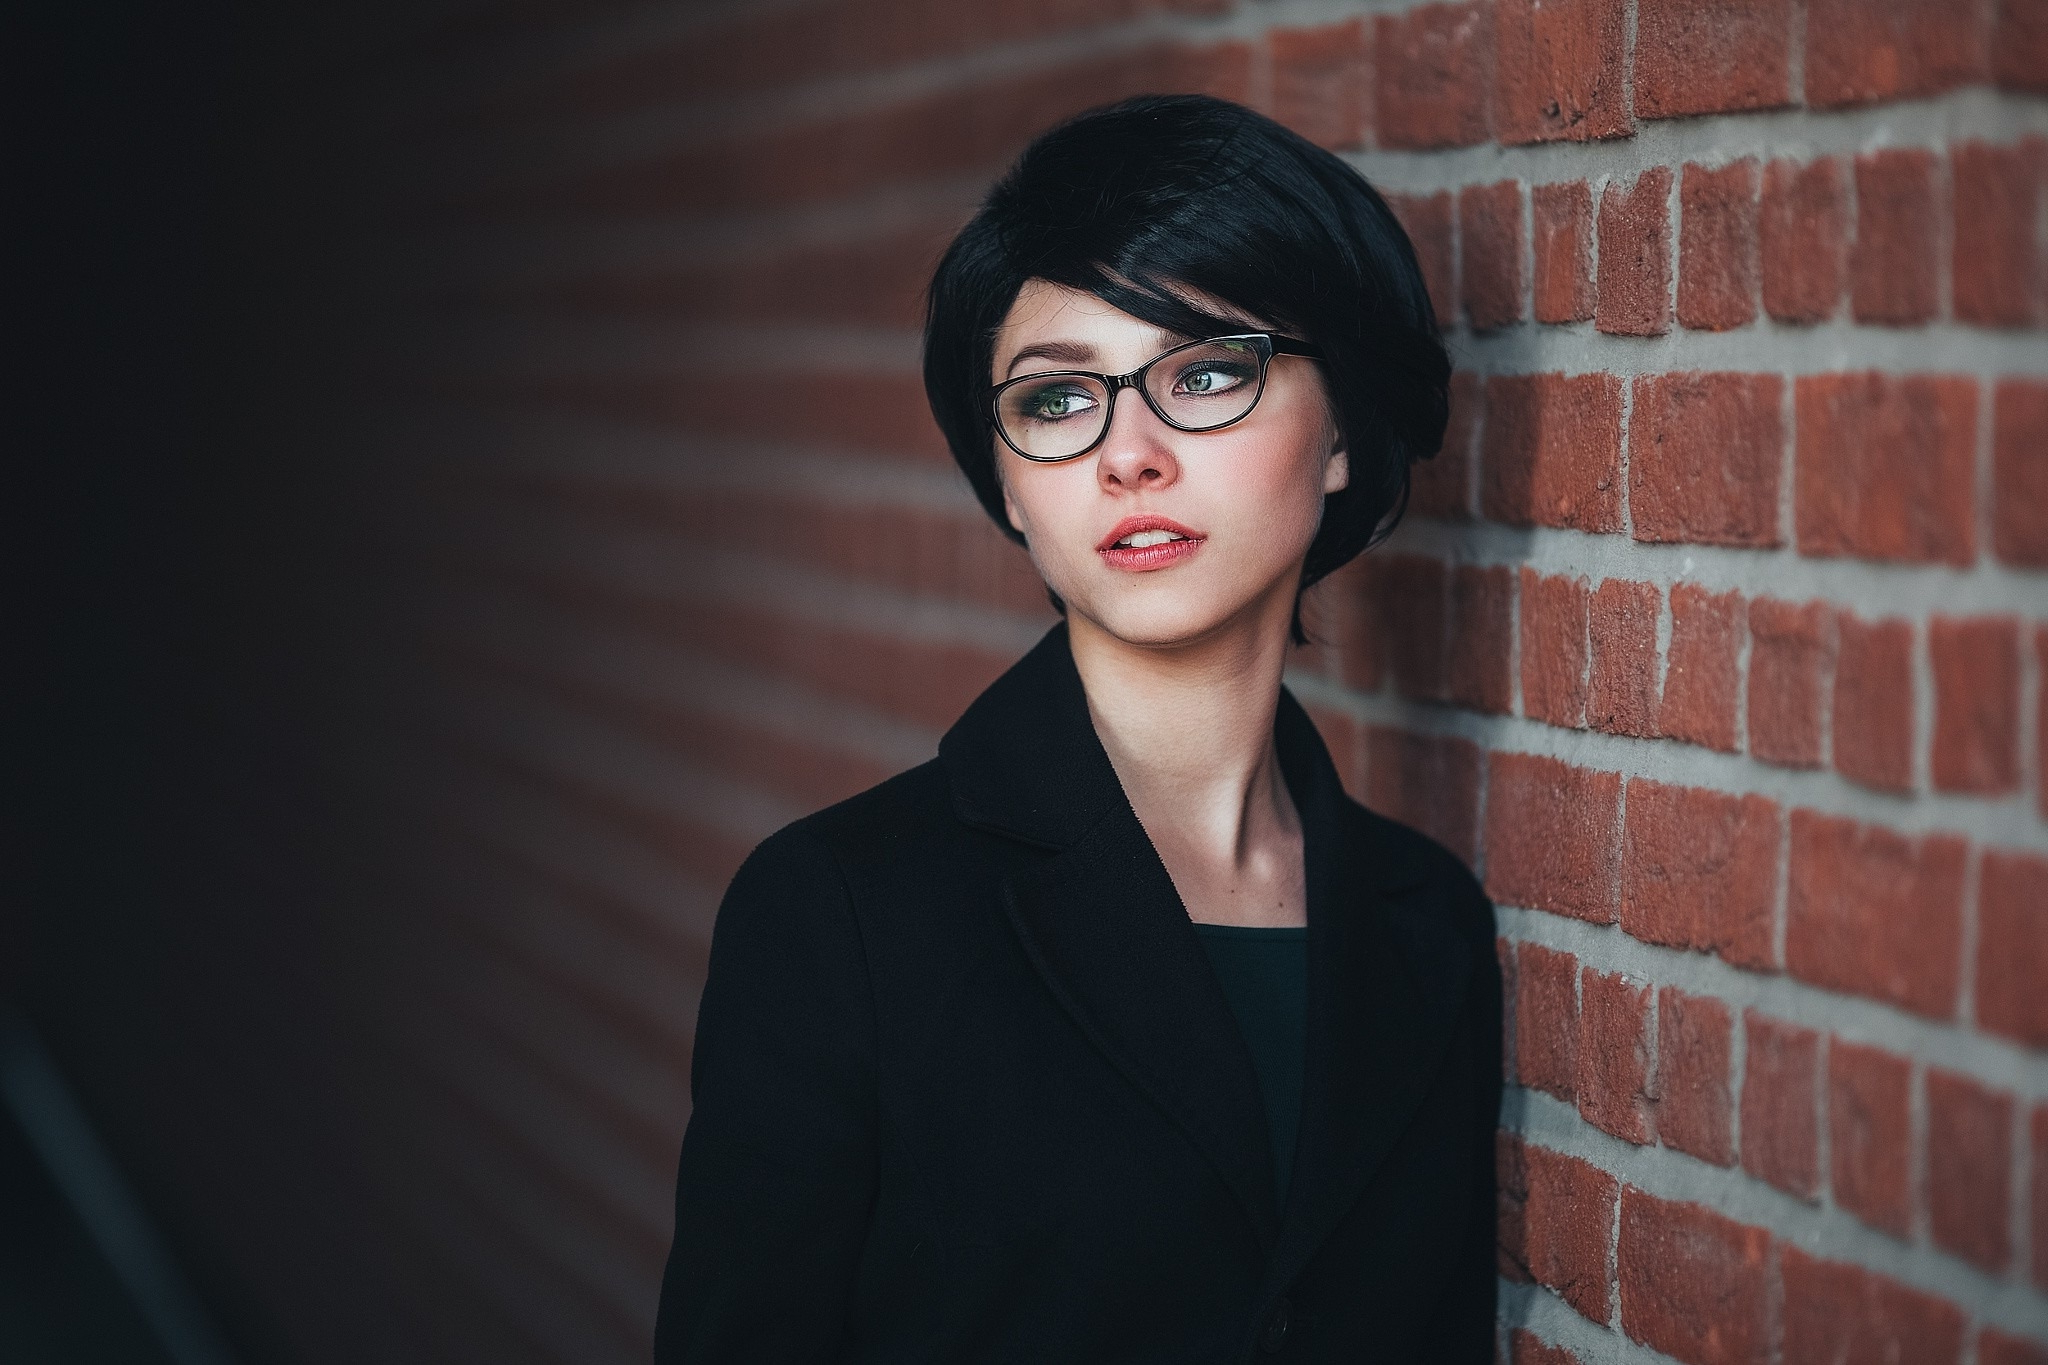 10 Trendy Short Haircuts Glasses Look Fresh   Hairstyles Regarding Short Haircuts For Glasses (View 14 of 25)